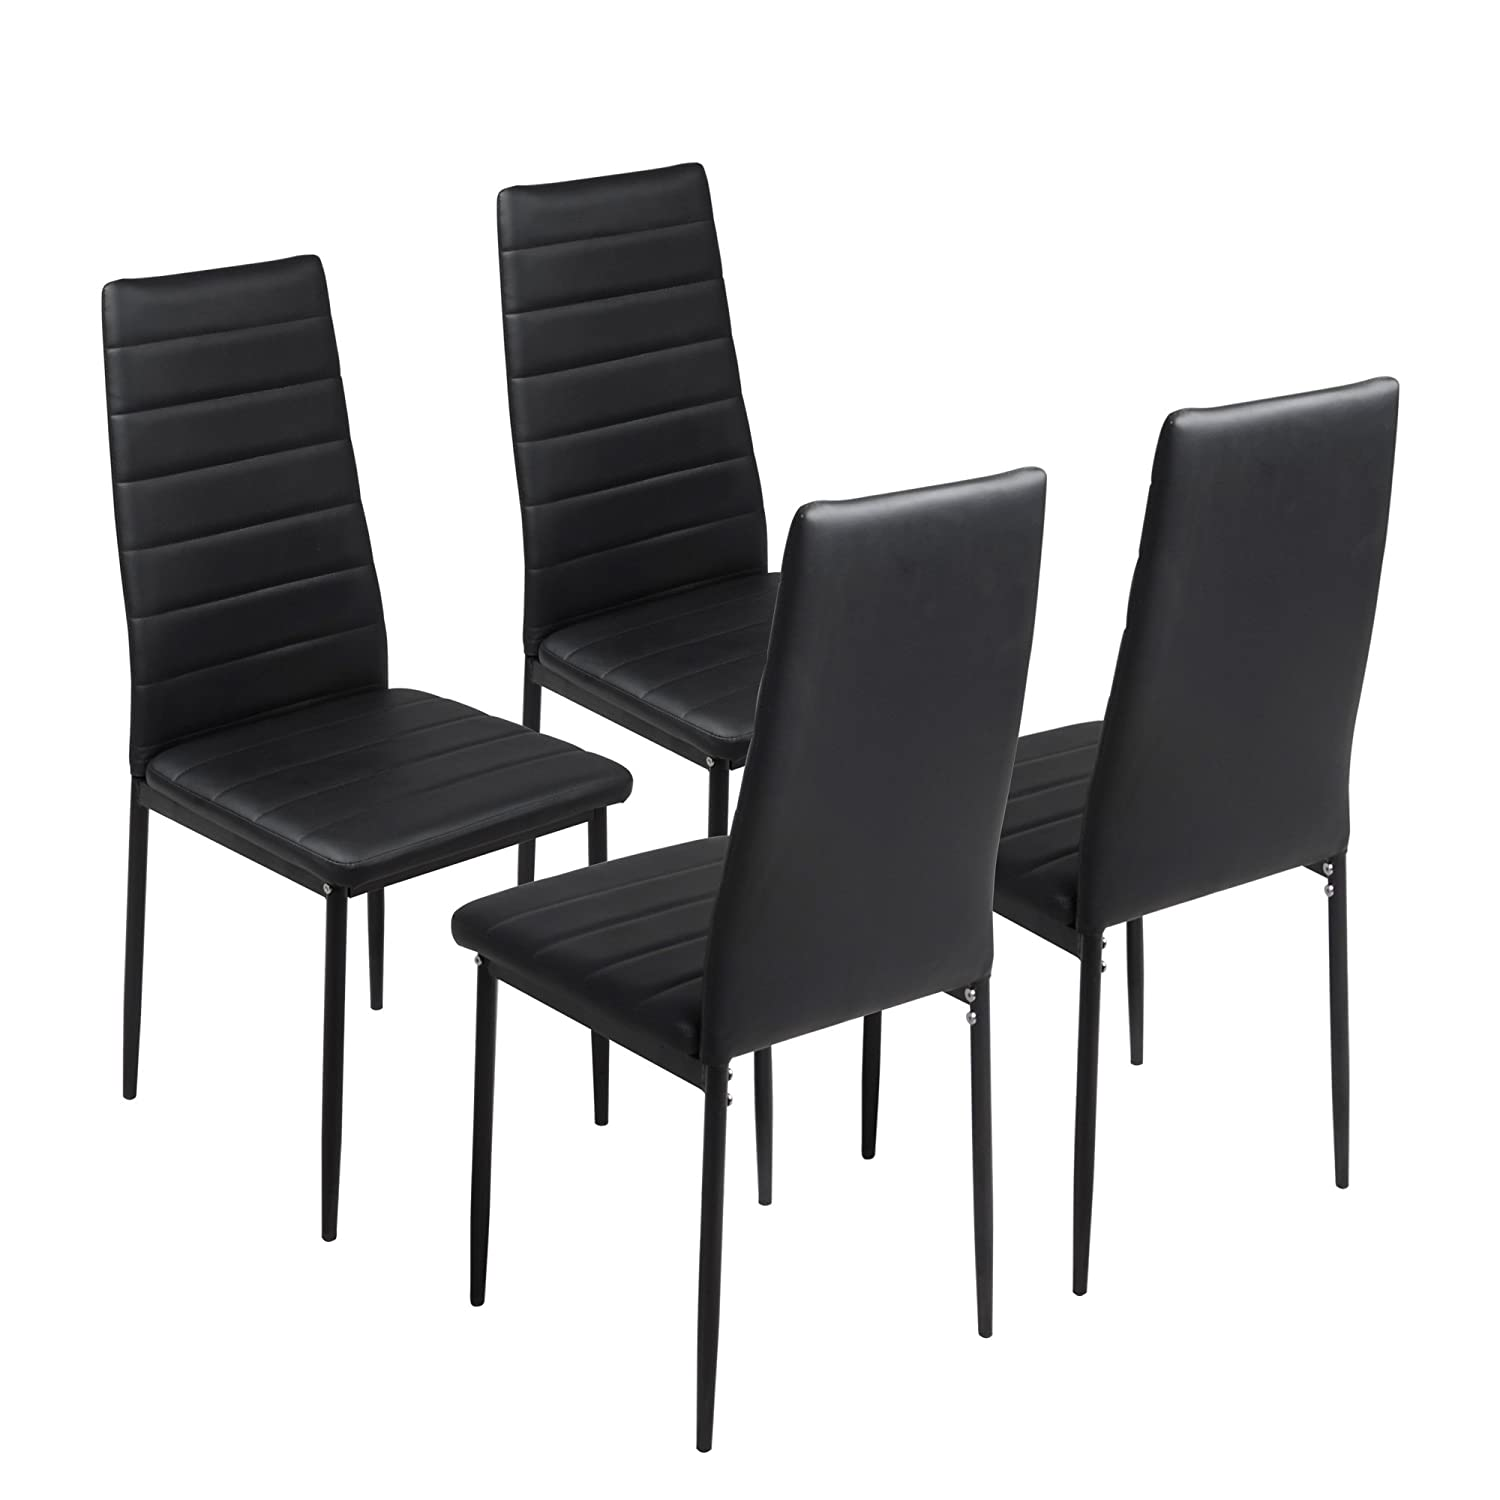 FAYEAN Dining Kitchen Chair High Back Foam Padded Seat with Steel Frame Heavy Duty for Home Kitchen Room Furniture,Set of 4(Black)